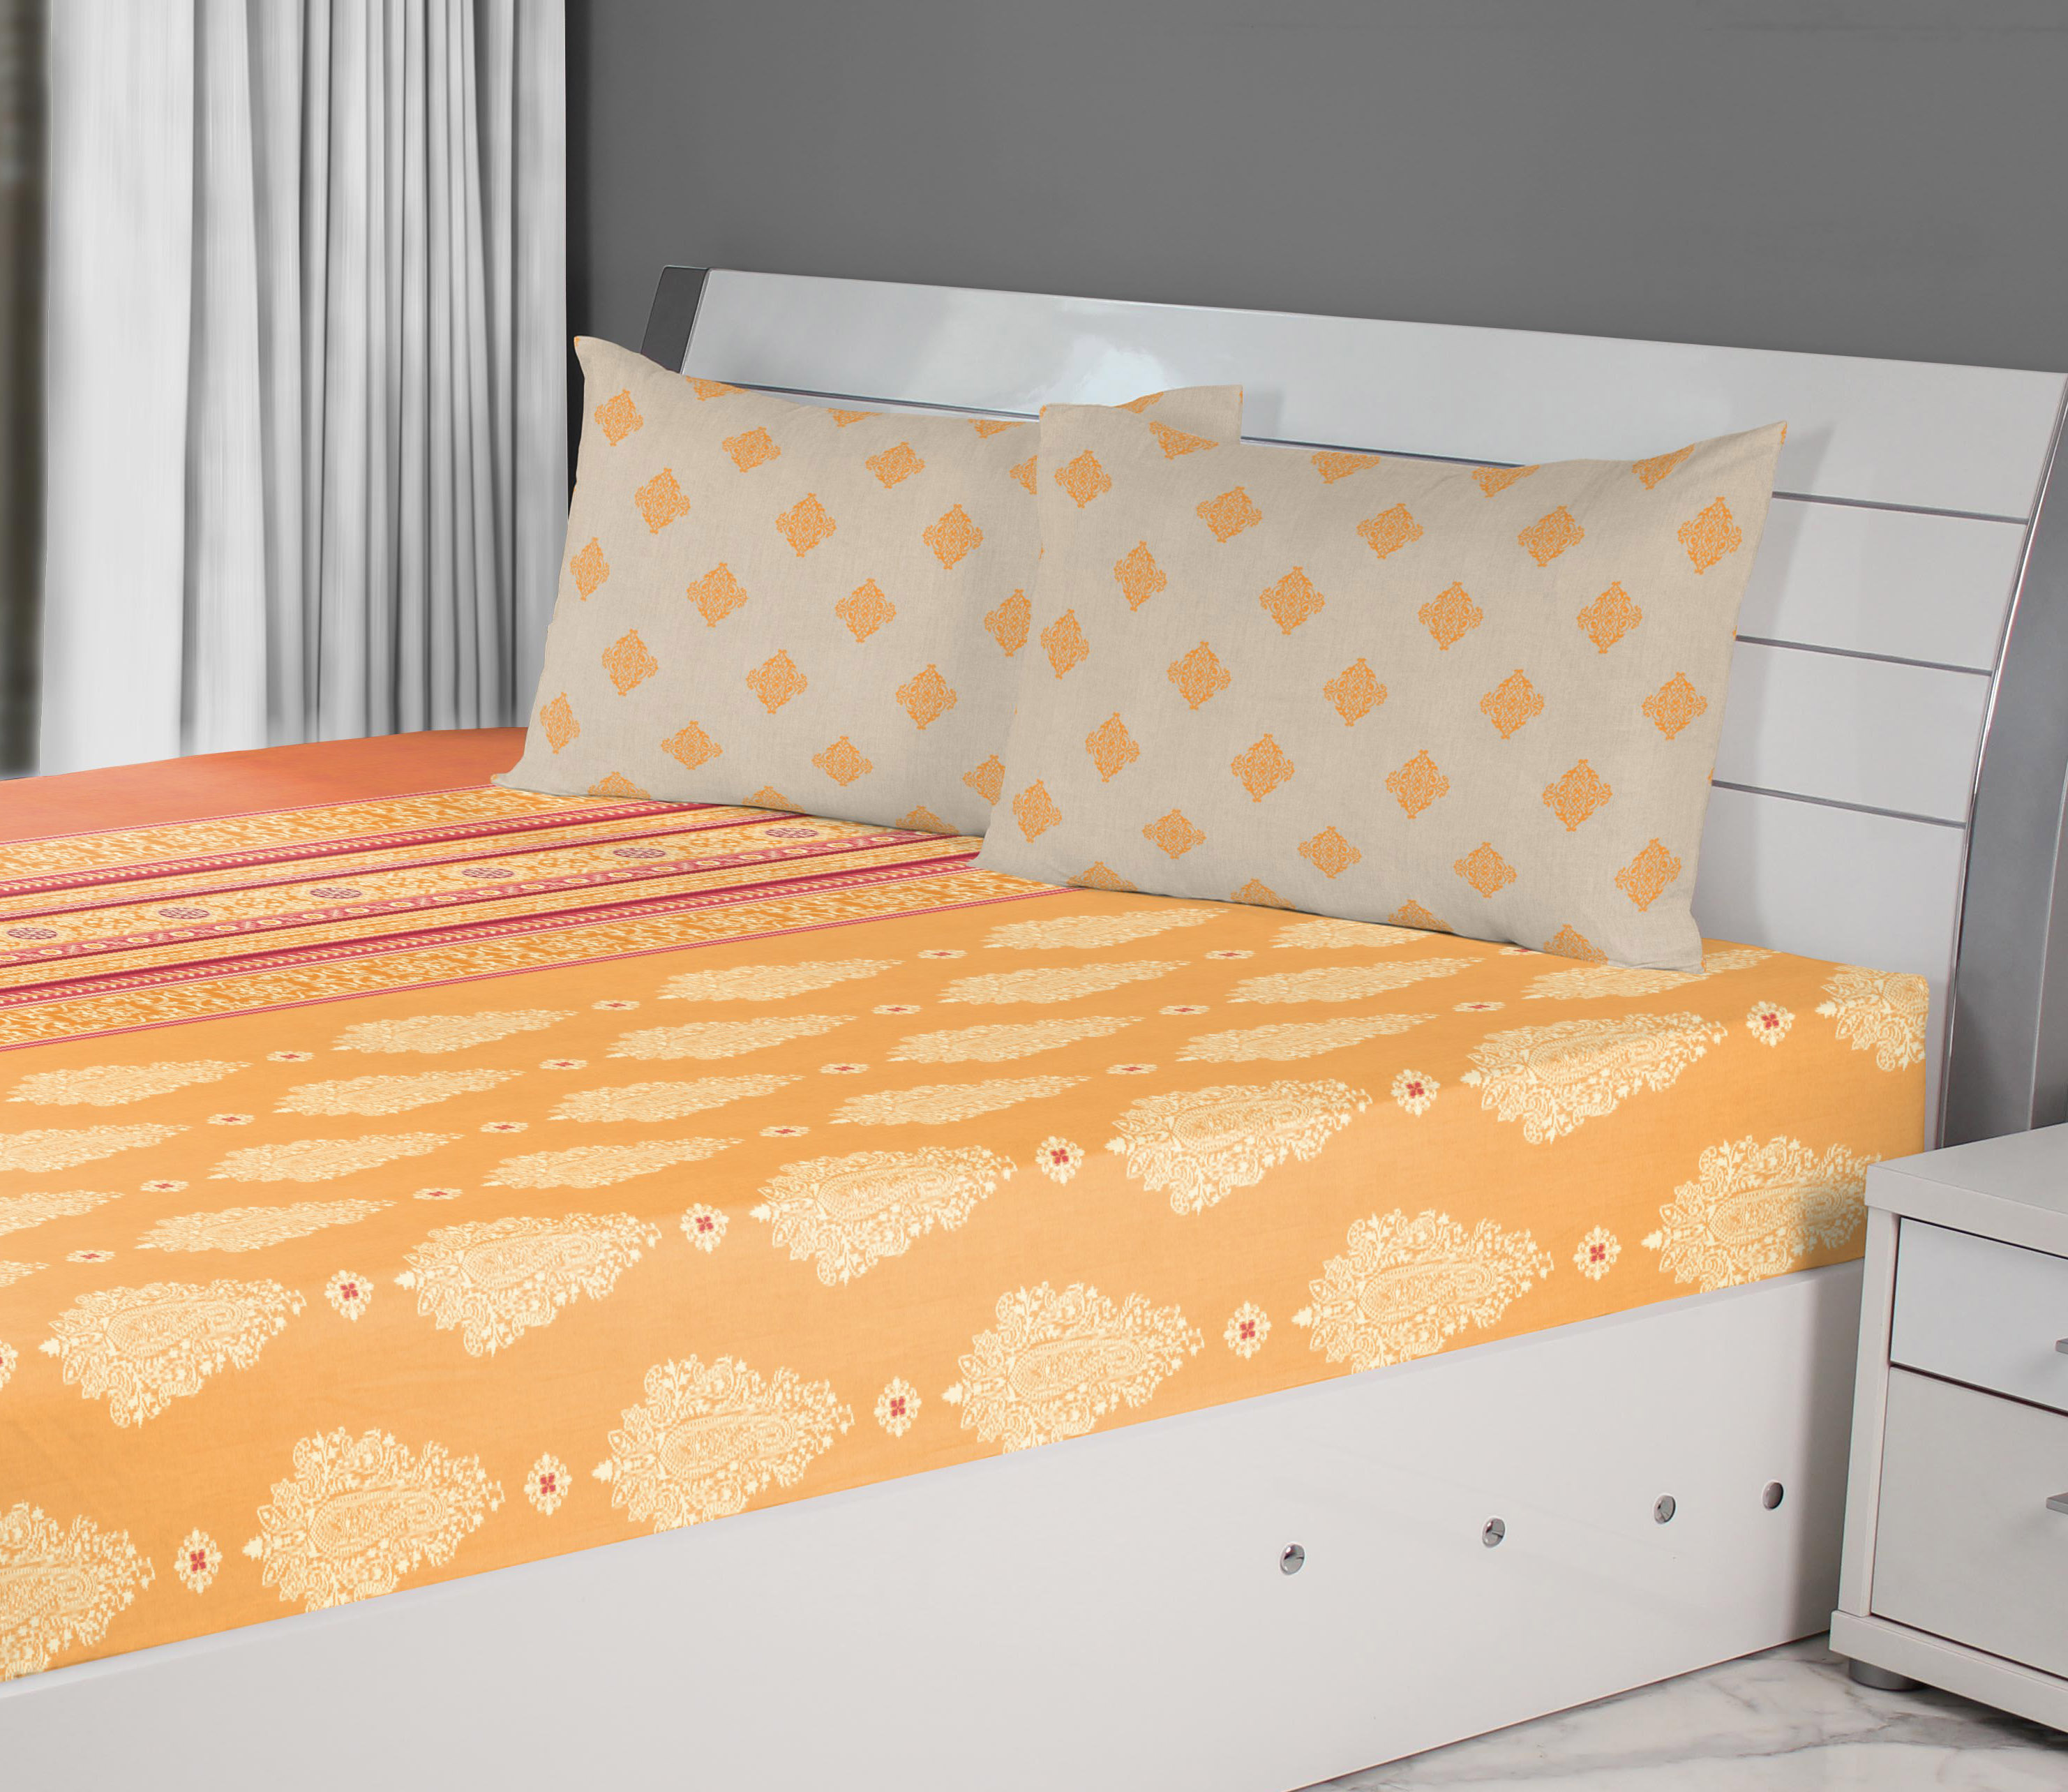 Emilia Cotton King Bedsheets in Mango Rust Colour by Living Essence